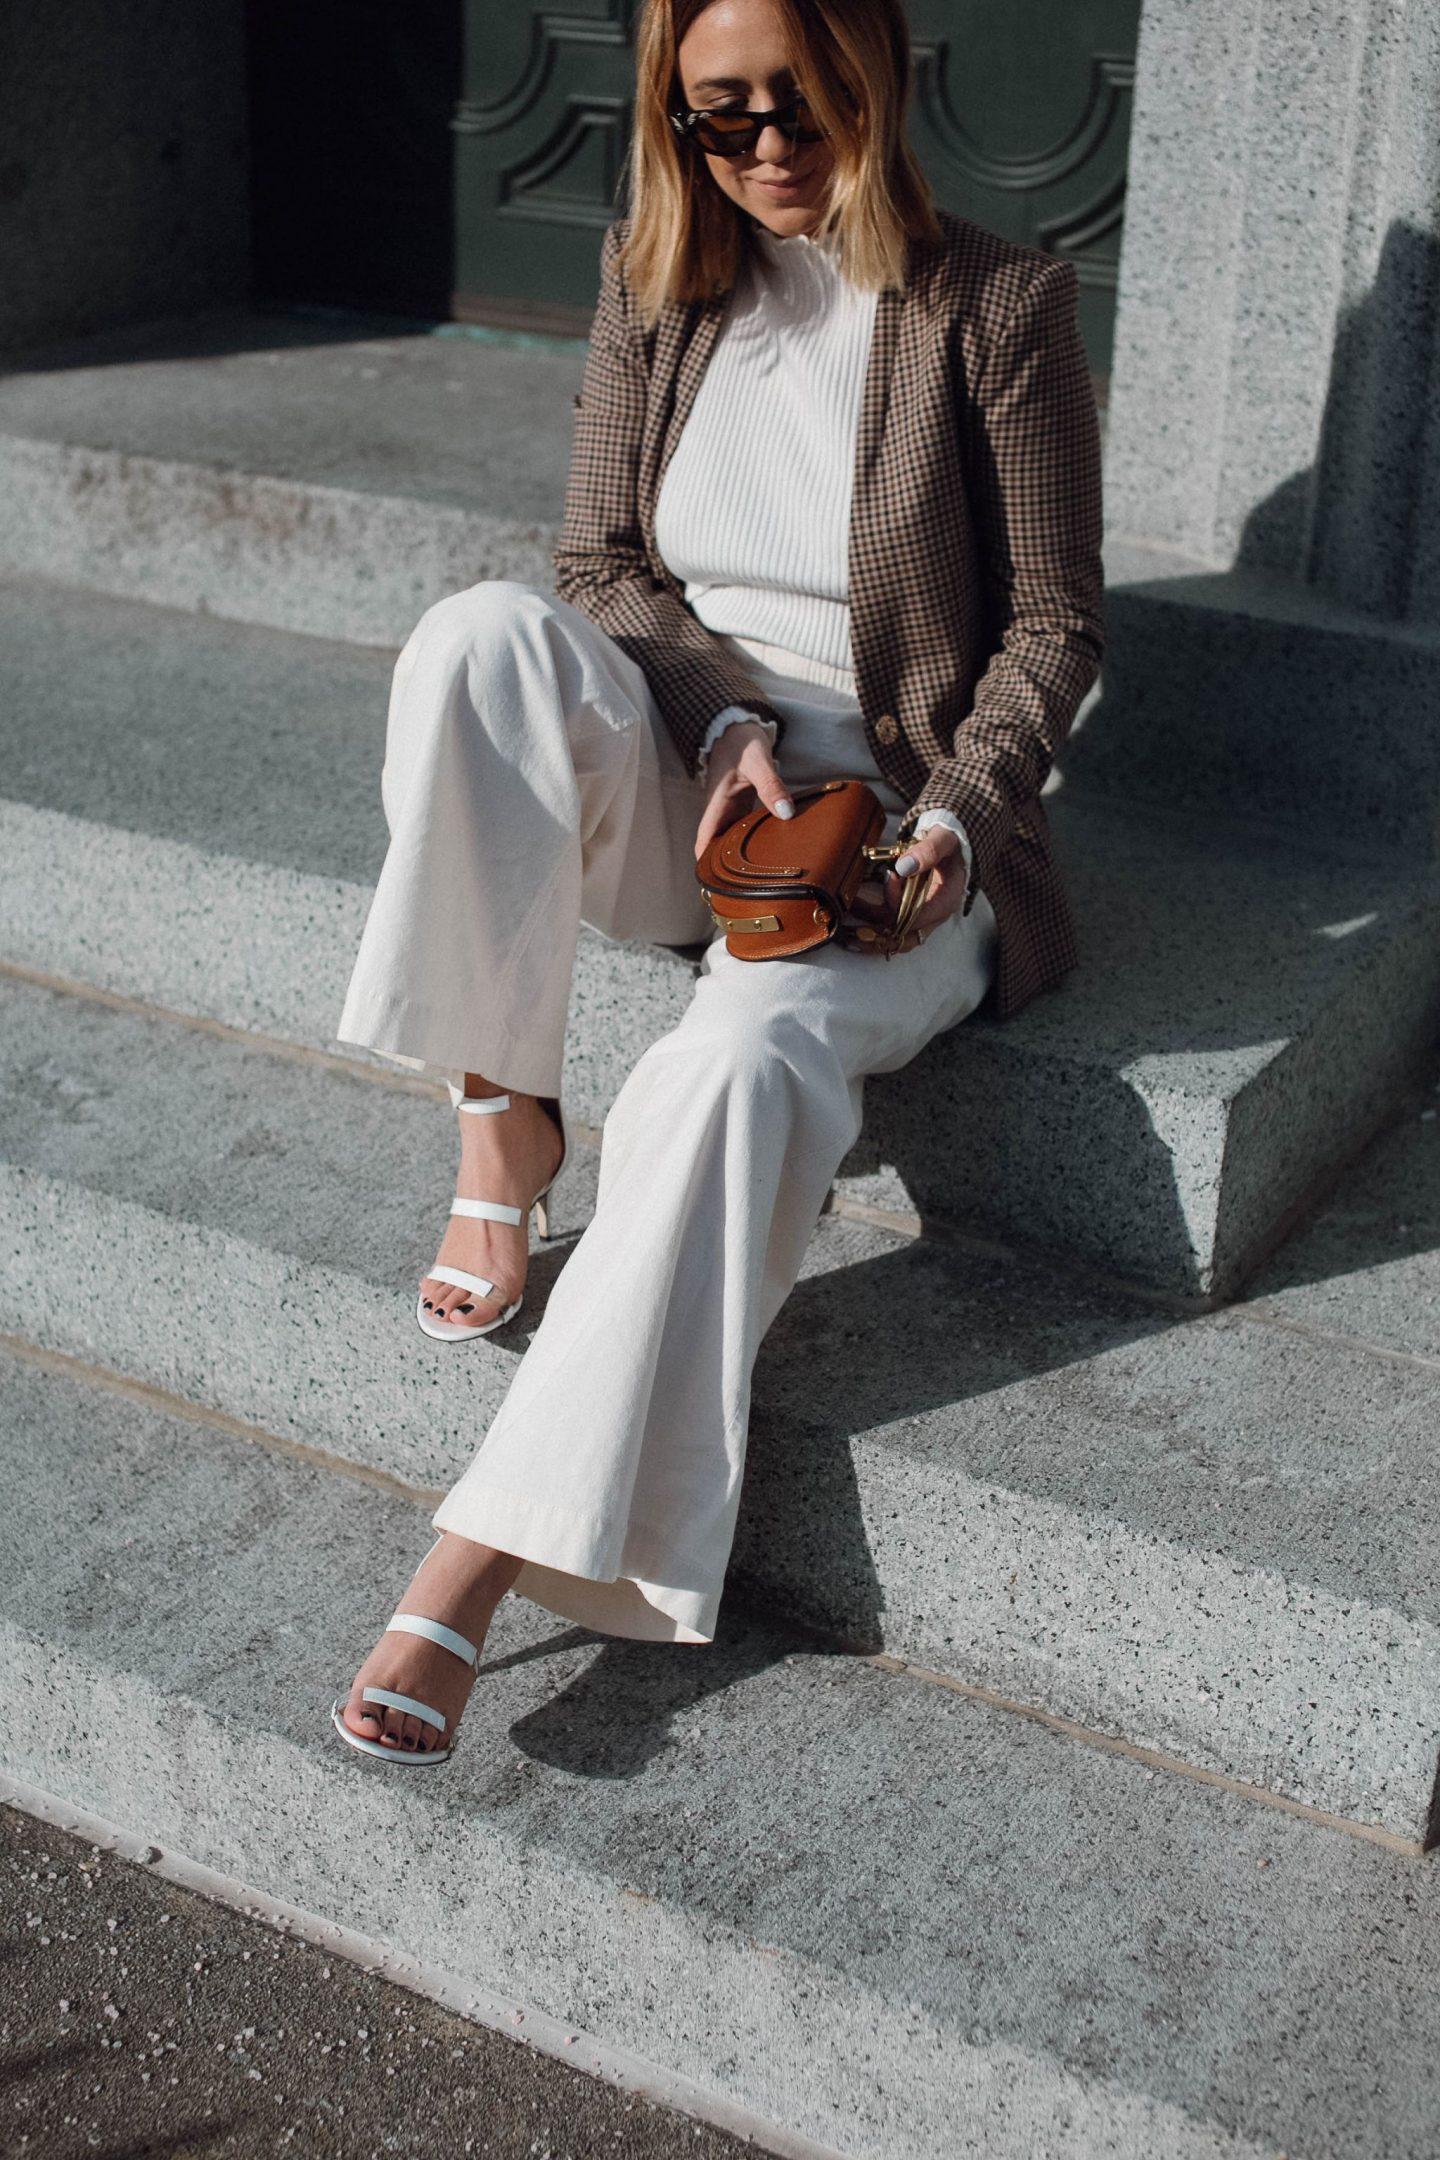 Your Feet Well Deserve a Break: Look after Them with Style